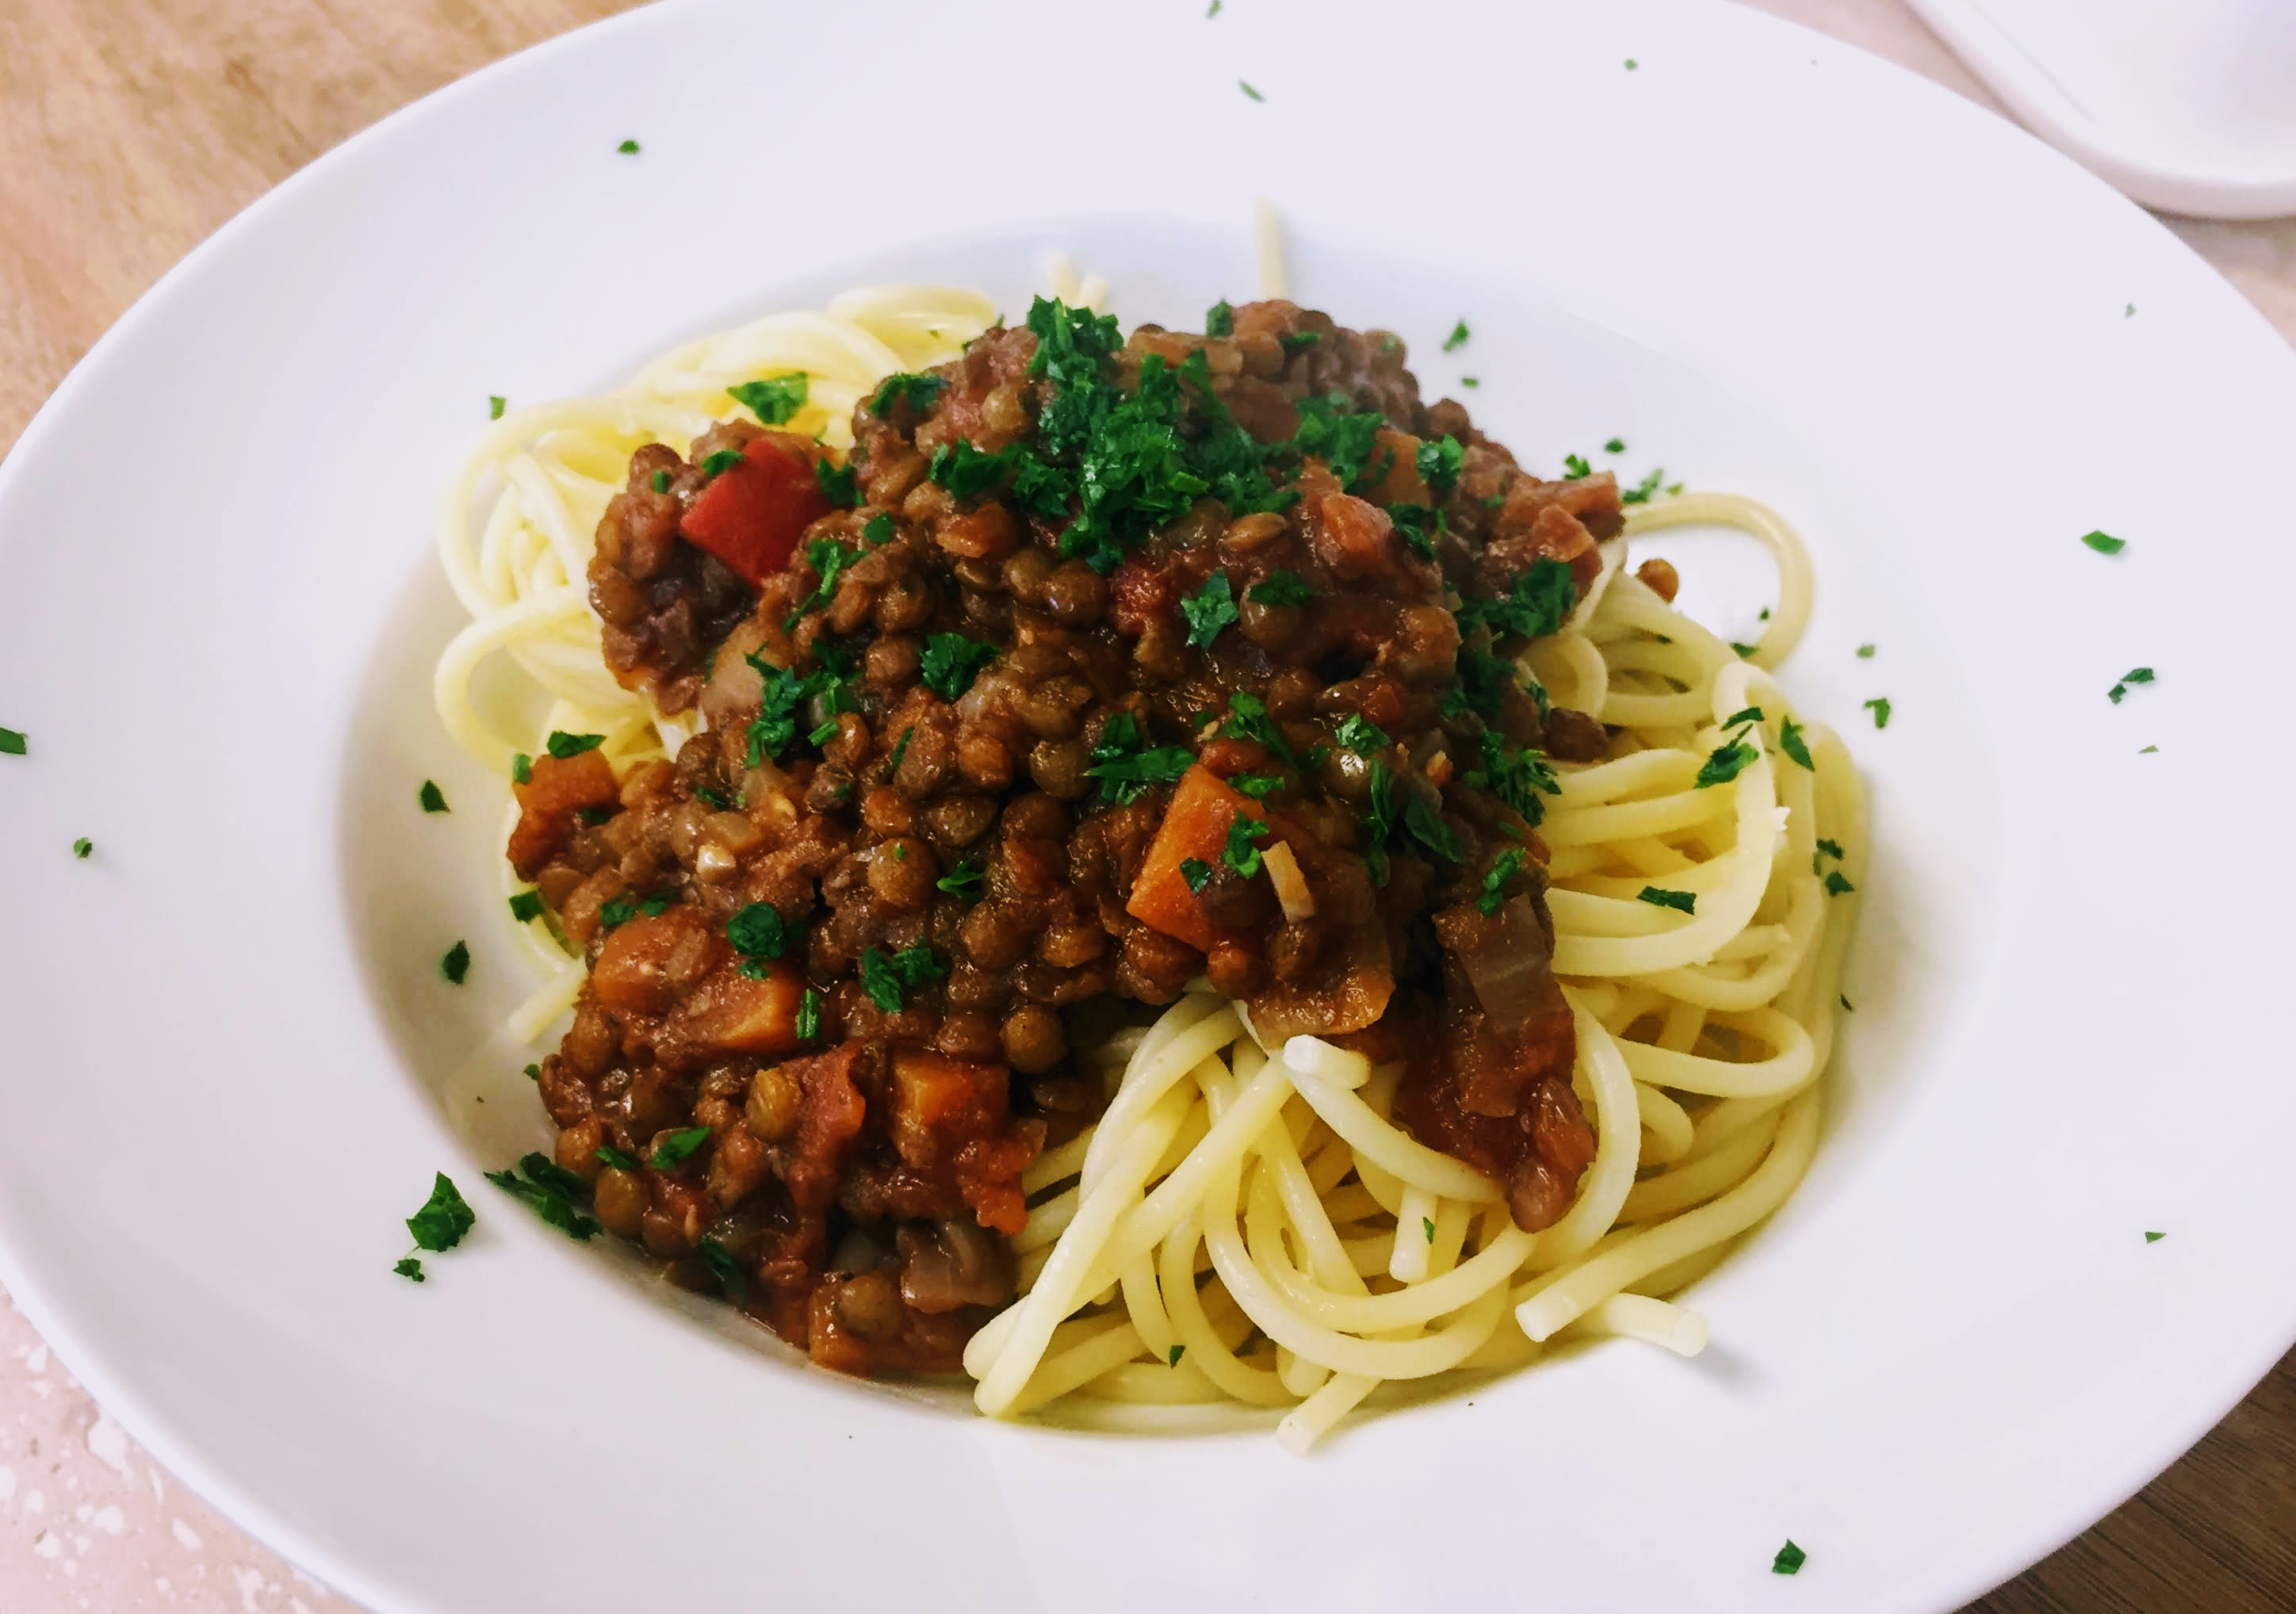 A rich and hearty lentil bolognese, studded with carrots and peppers, piled over a tangled mound of spaghetti and sprinkled with chopped fresh parsley.